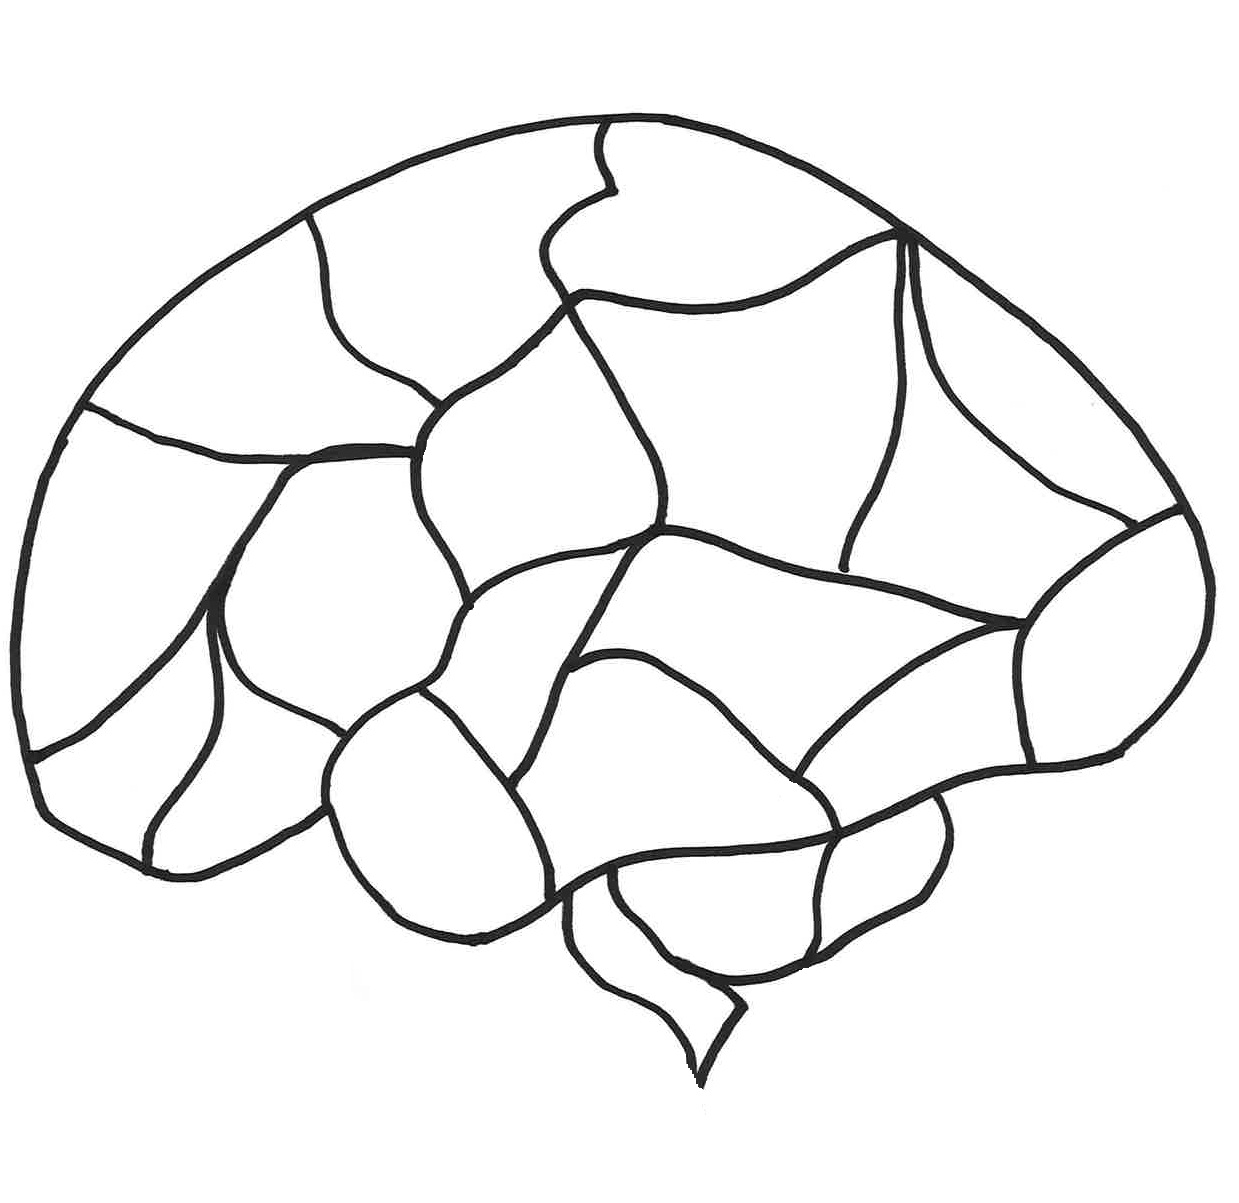 Fill In The Blank Brain Diagram